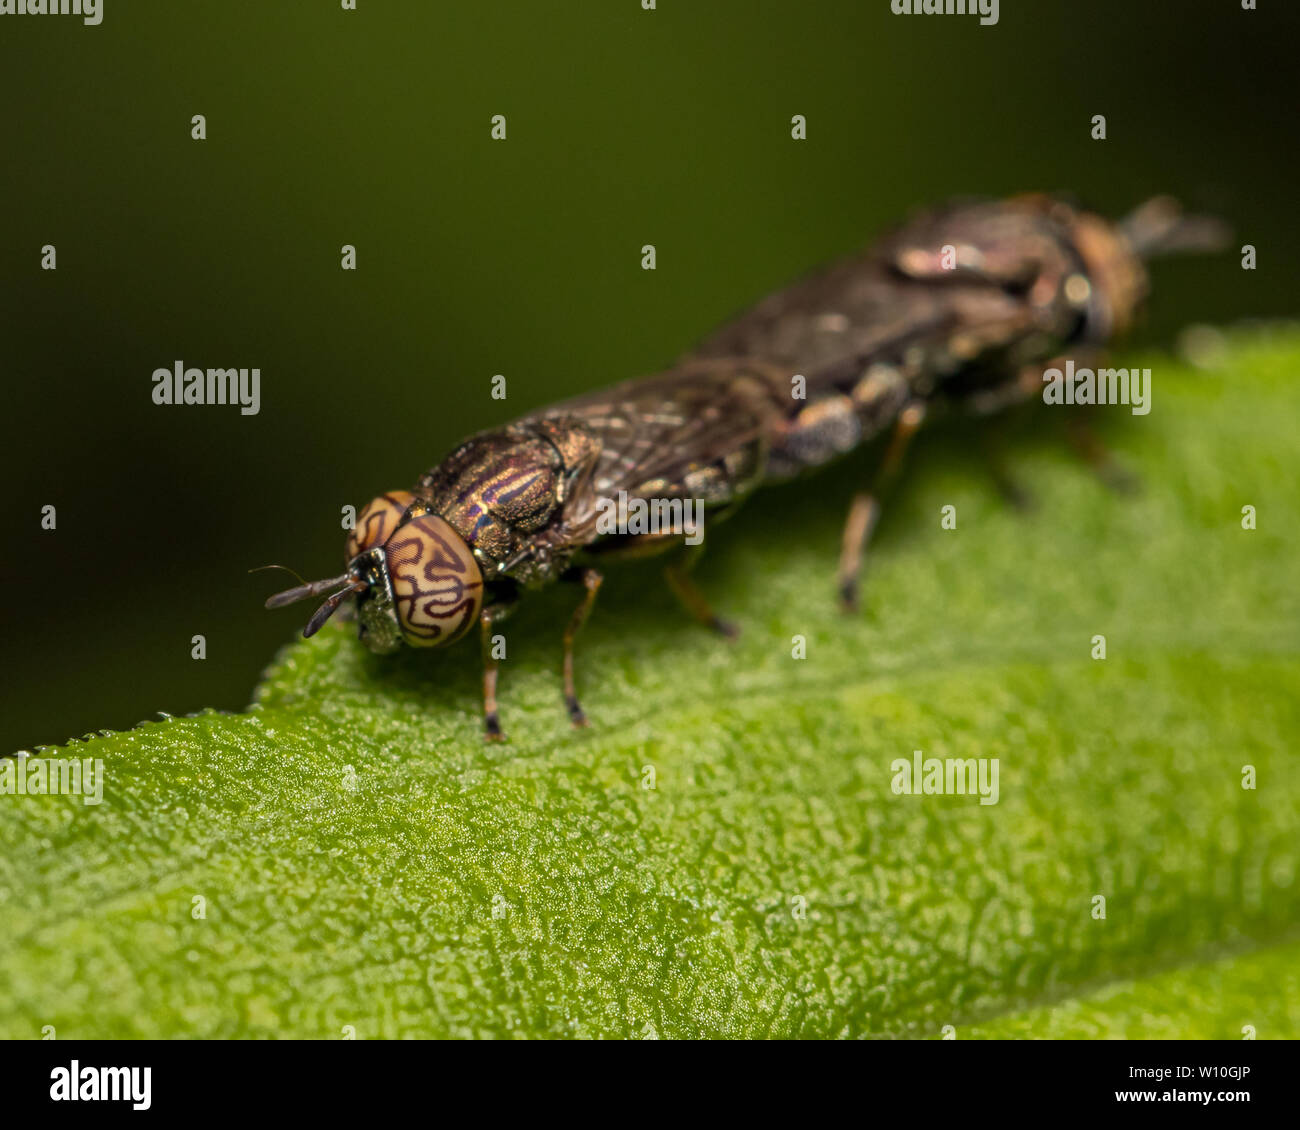 Wavy Mucksucker  (Orthonevra nitida) flies with a distinctive pattern on compound eyes mating on a green leaf - Stock Image